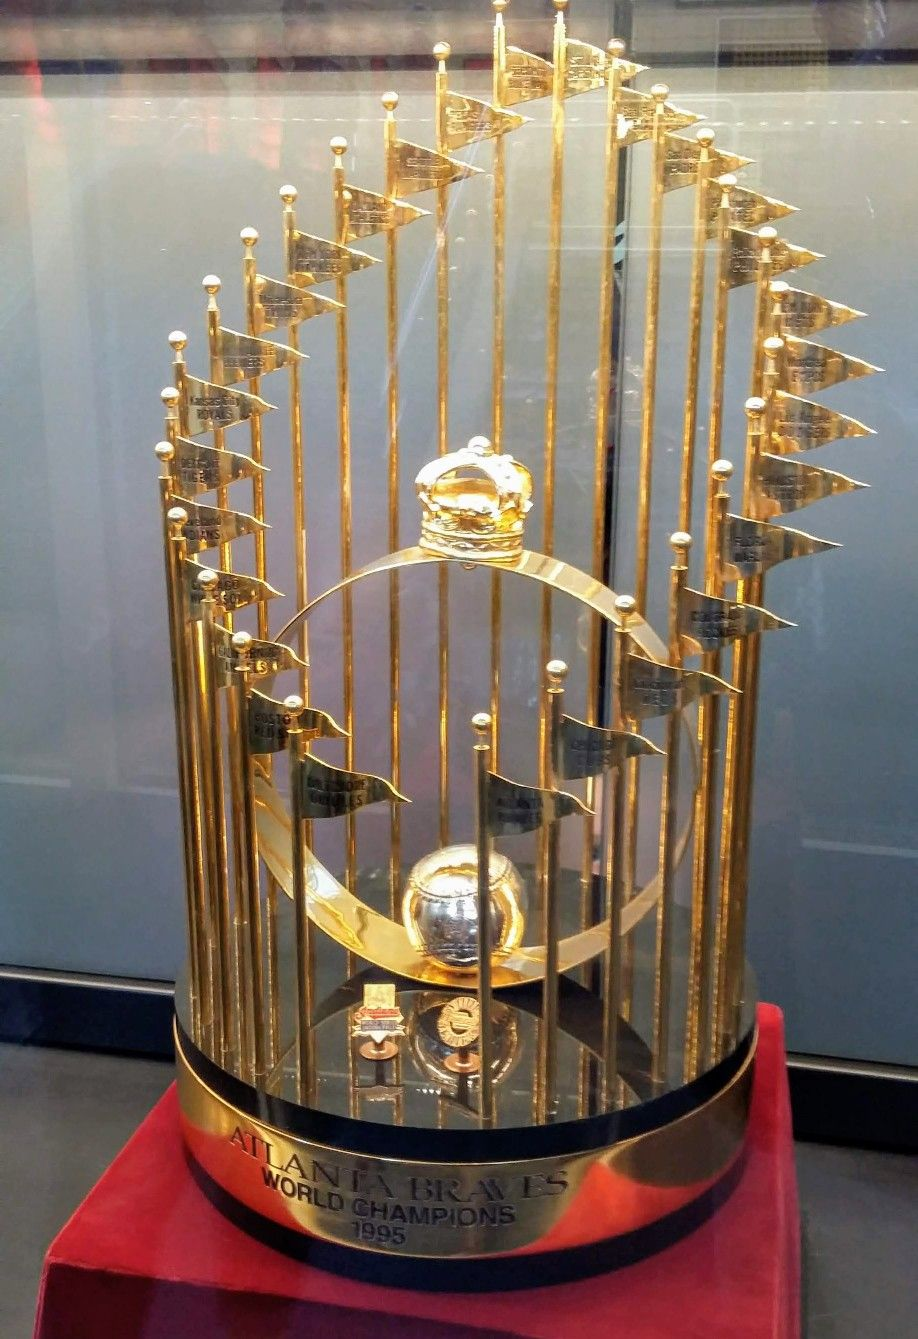 Pin By Tracy Nelson On Baseball World Series Trophy Replicas